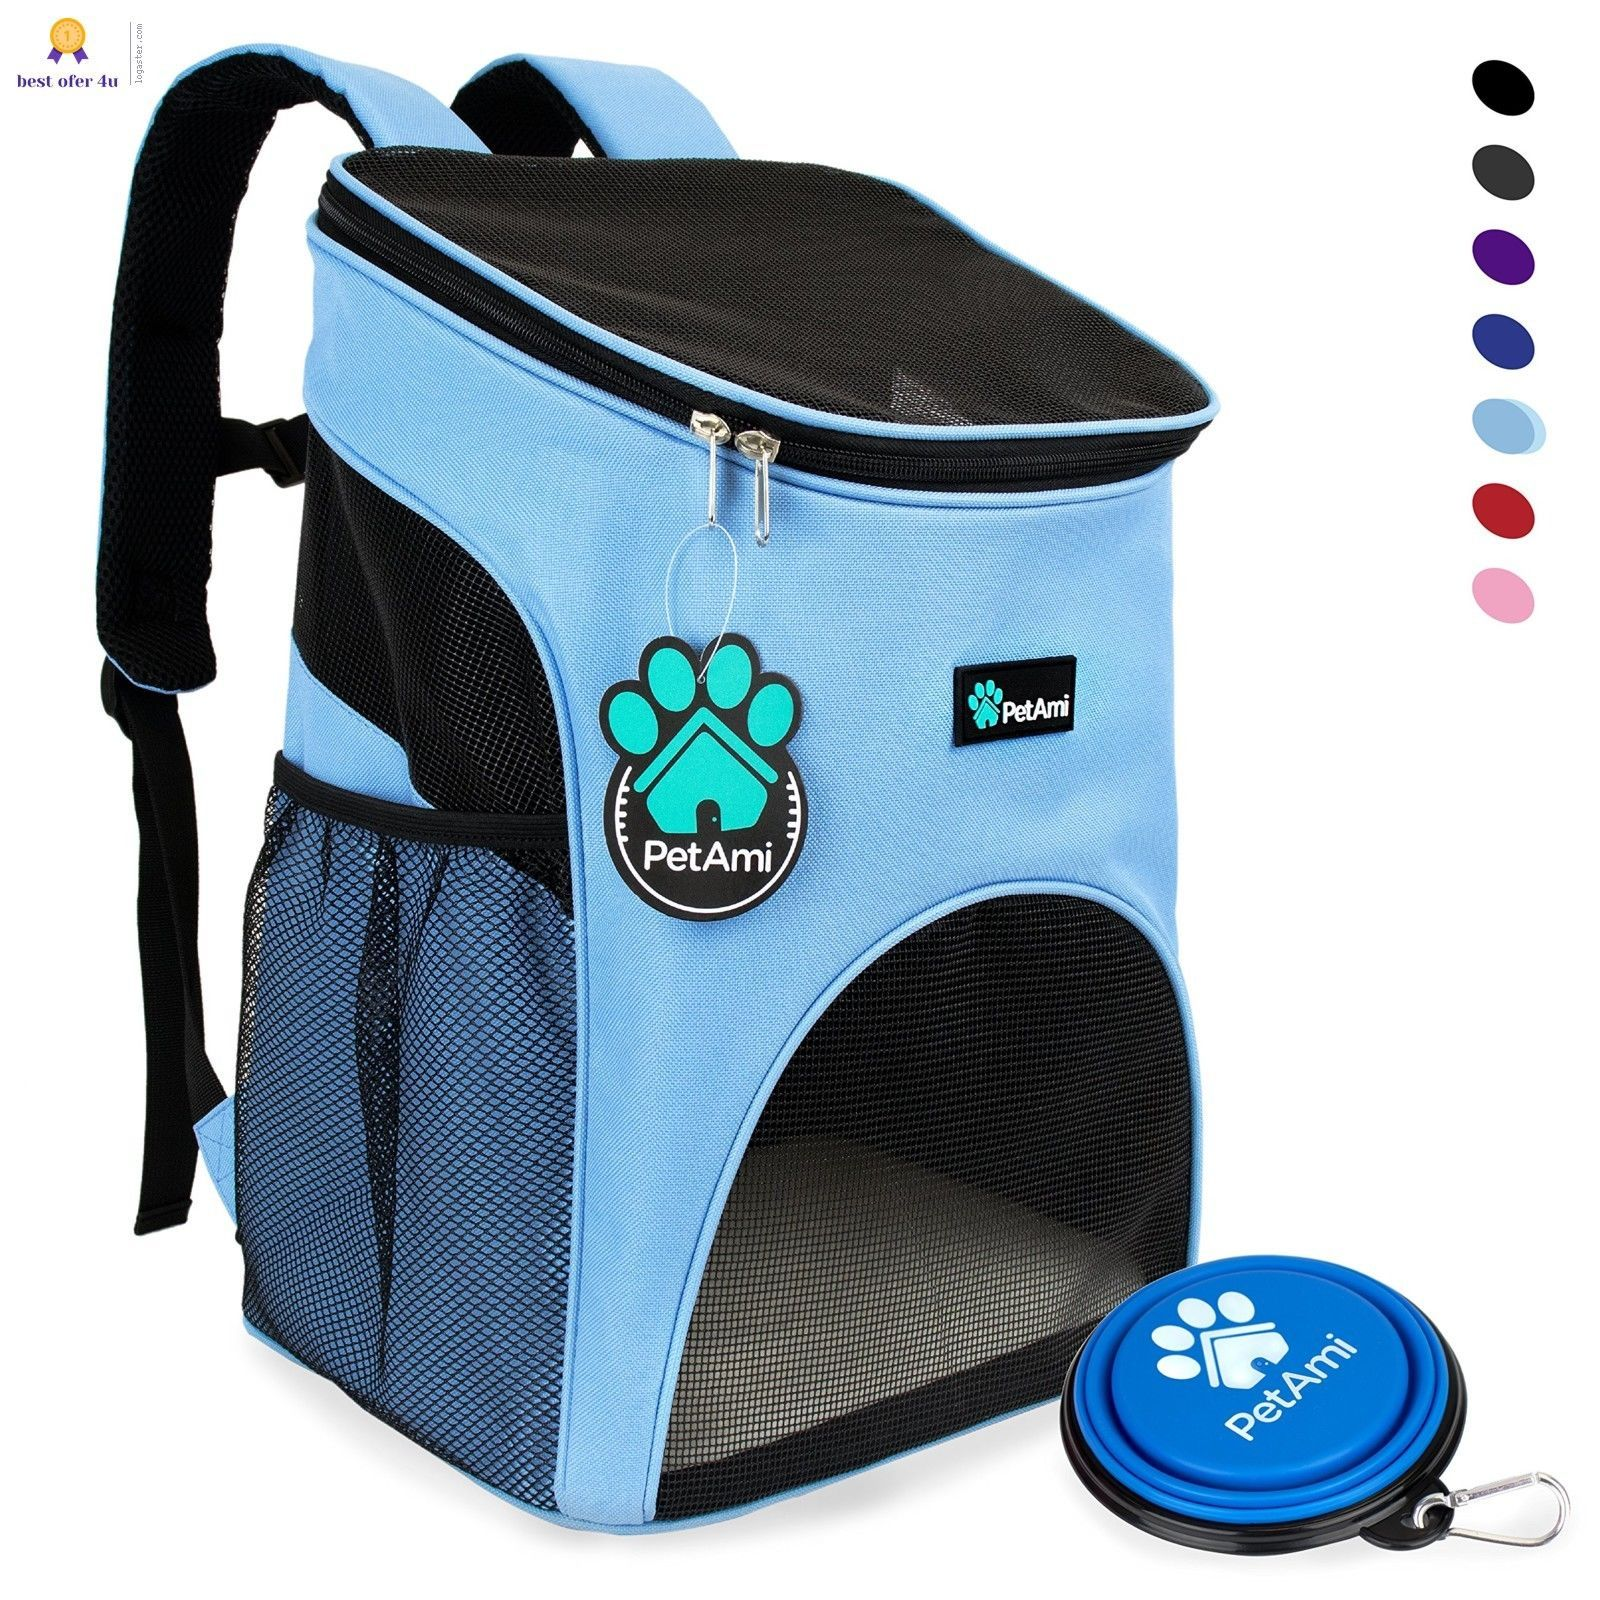 06cd9b2586d Premium Pet Carrier Backpack for Small Cats and Dogs by PetAmi | Ventilated  Desi | eBay